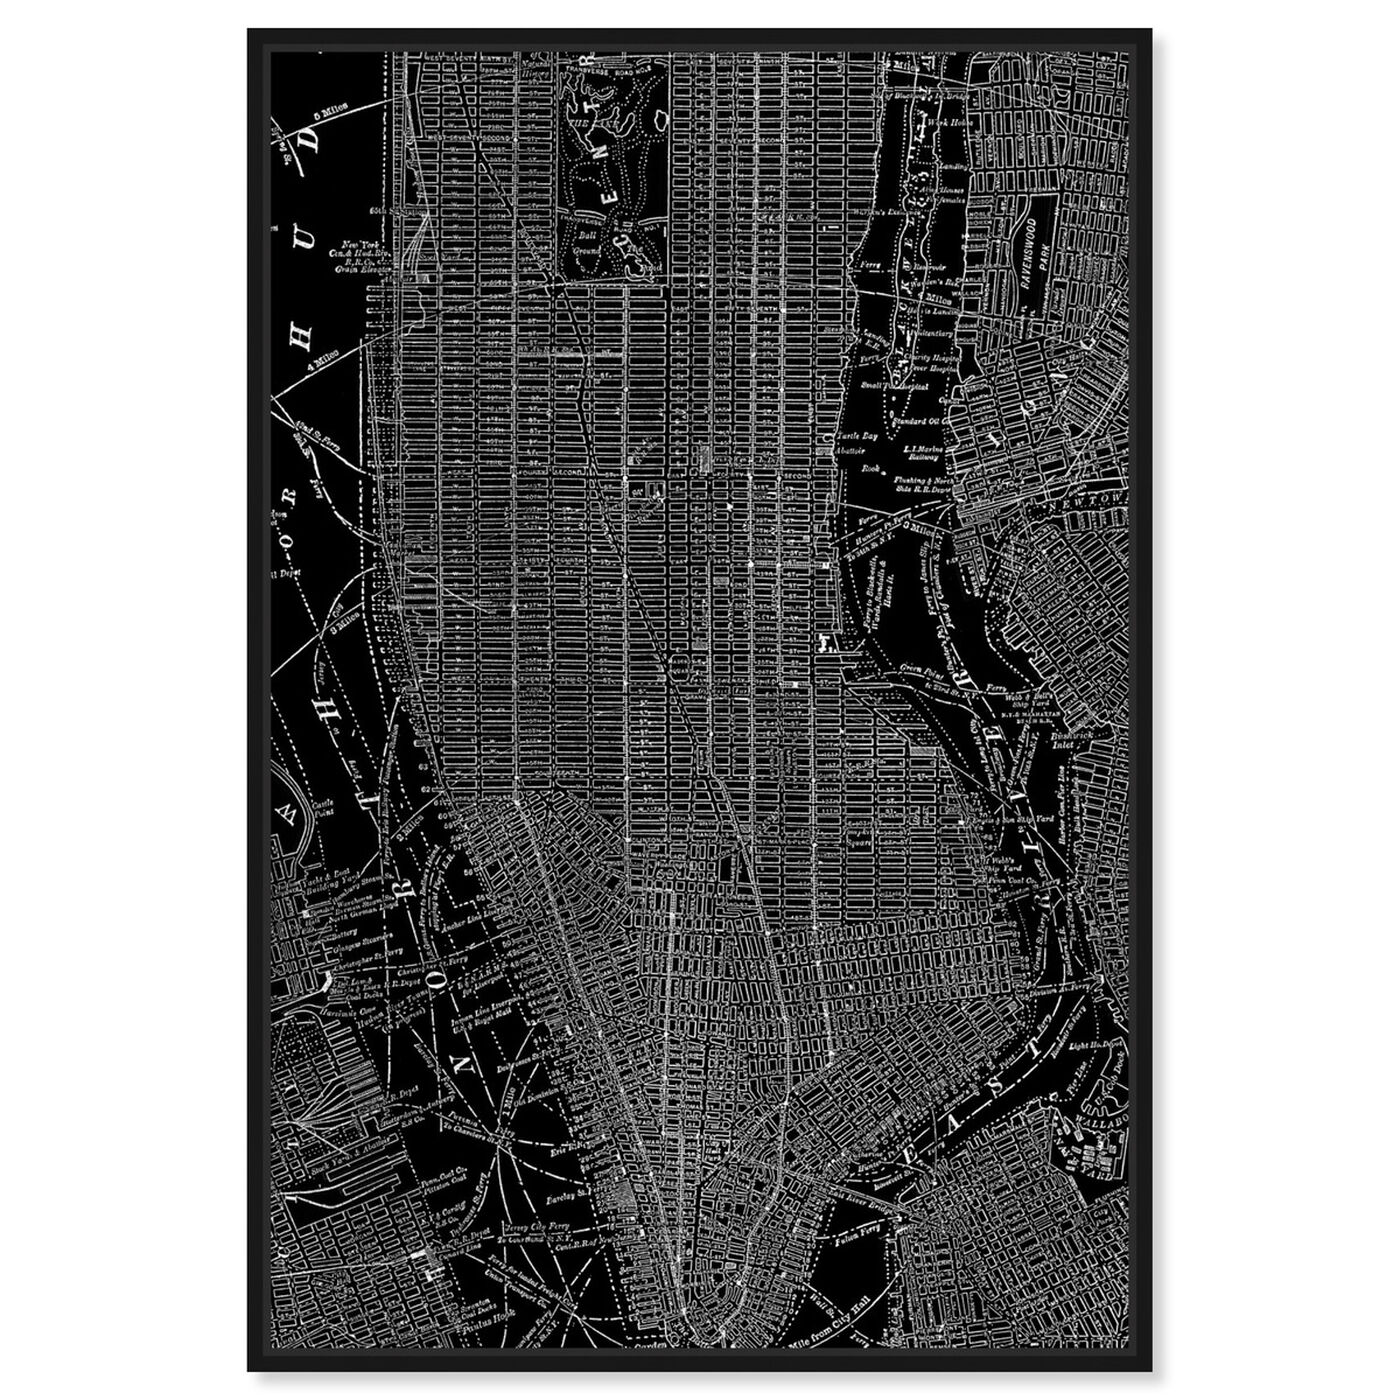 Front view of Phylum Design The City That Never Sleeps featuring maps and flags and us cities maps art.